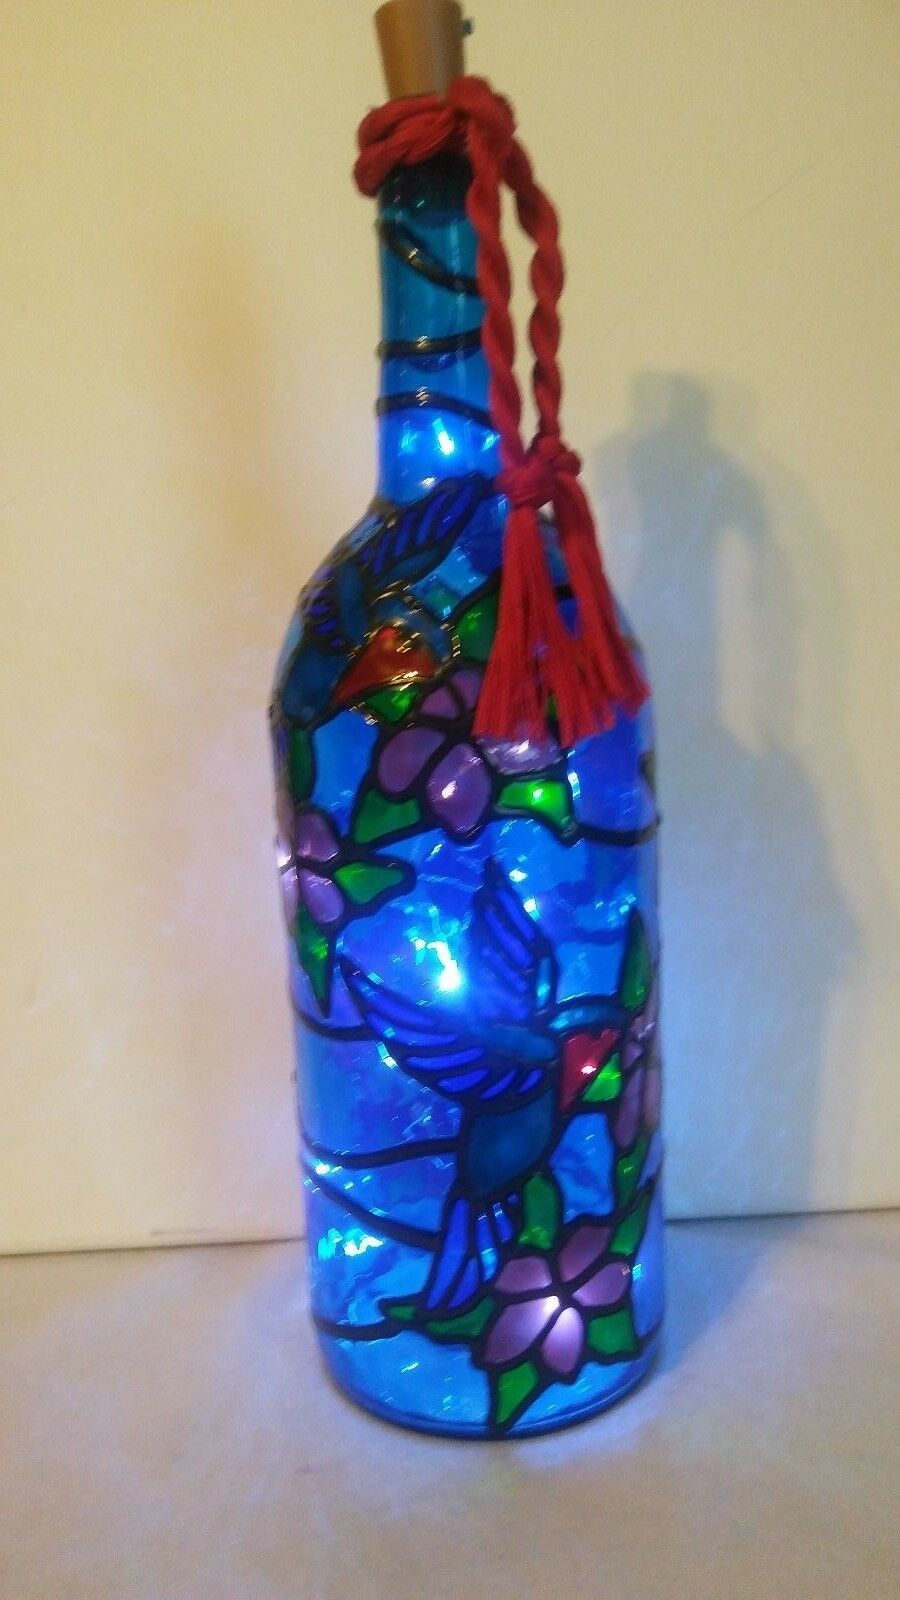 Hummingbird Bottle Lamp Handpainted Lighted Stained Glass Look LED lights